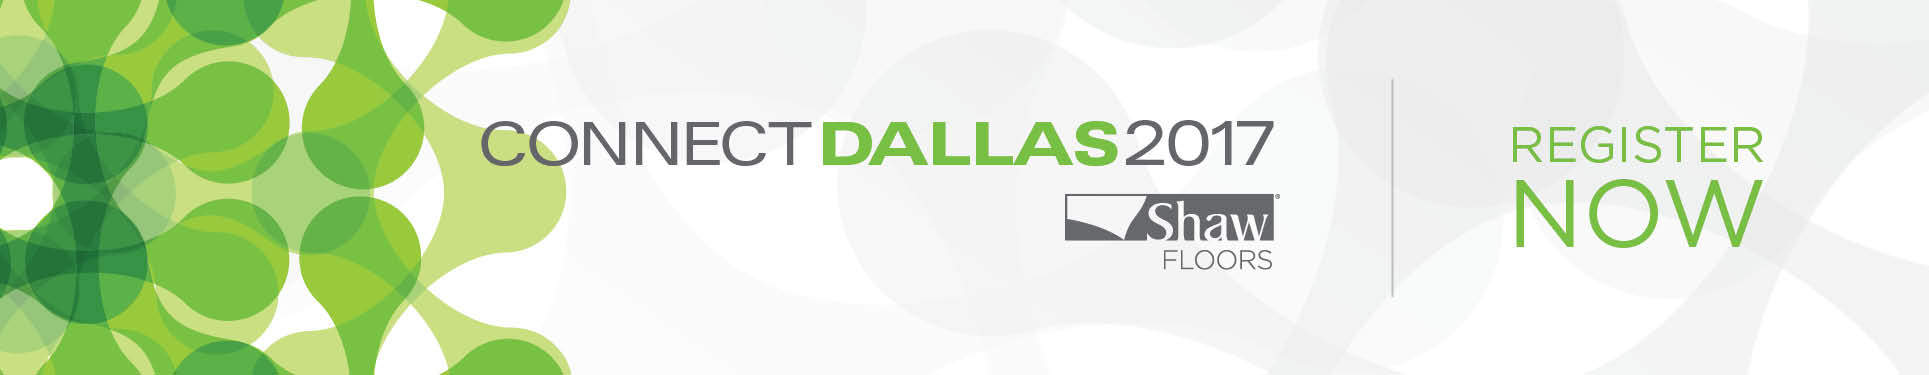 Dallas Market 2017